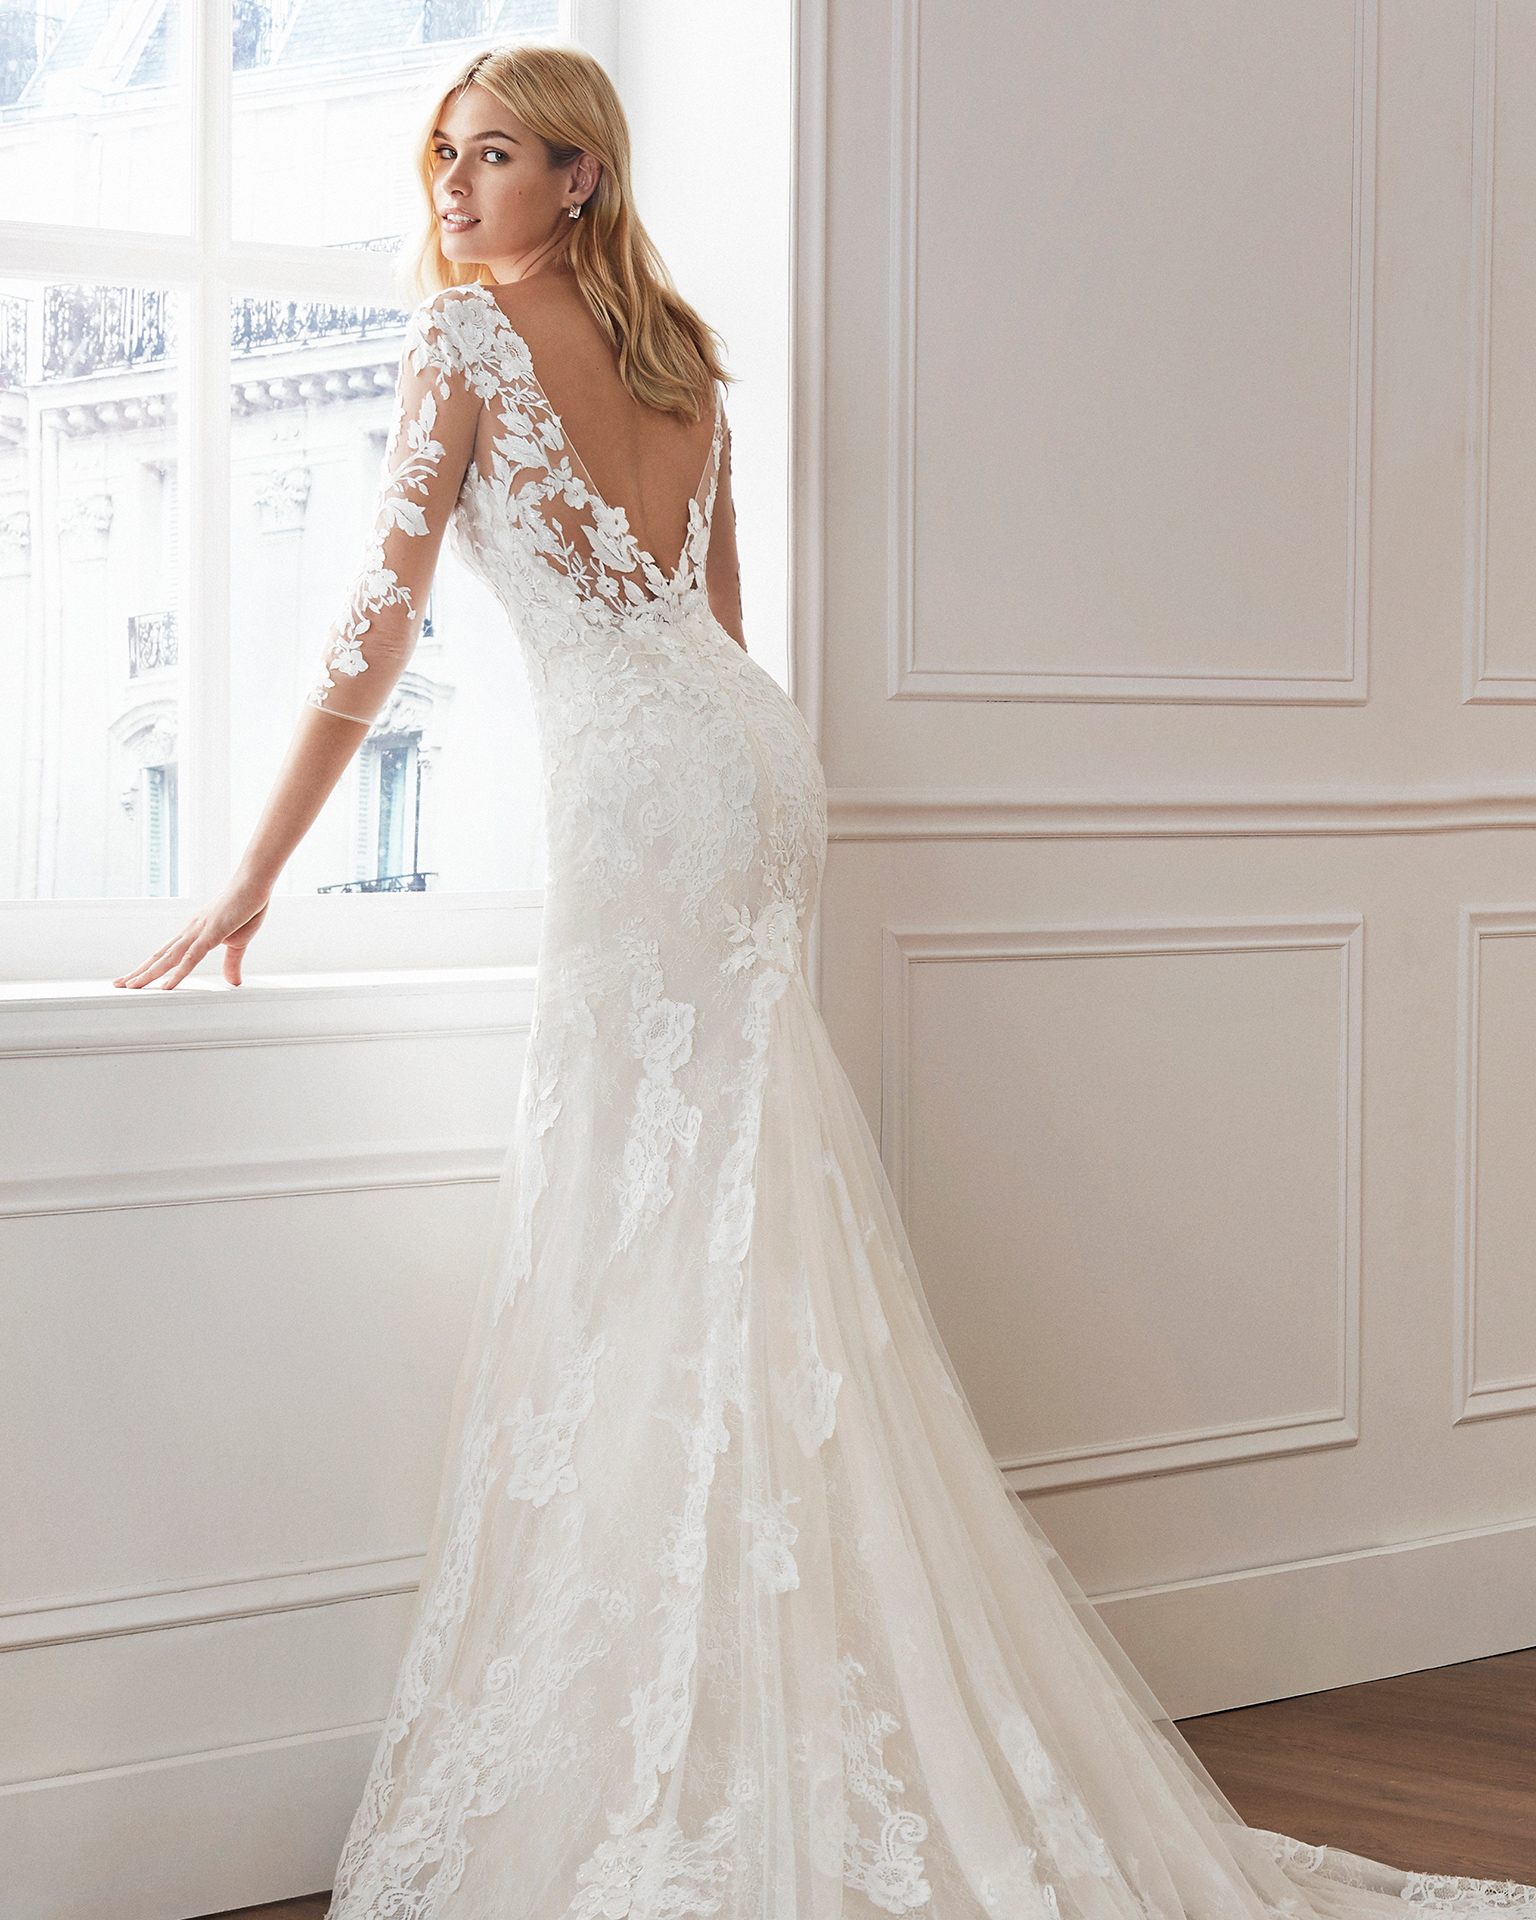 Mermaid-style wedding dress in beaded lace. Illusion neckline, long sleeves and appliquéd skirt. Available in natural and natural/nude. 2019  Collection.